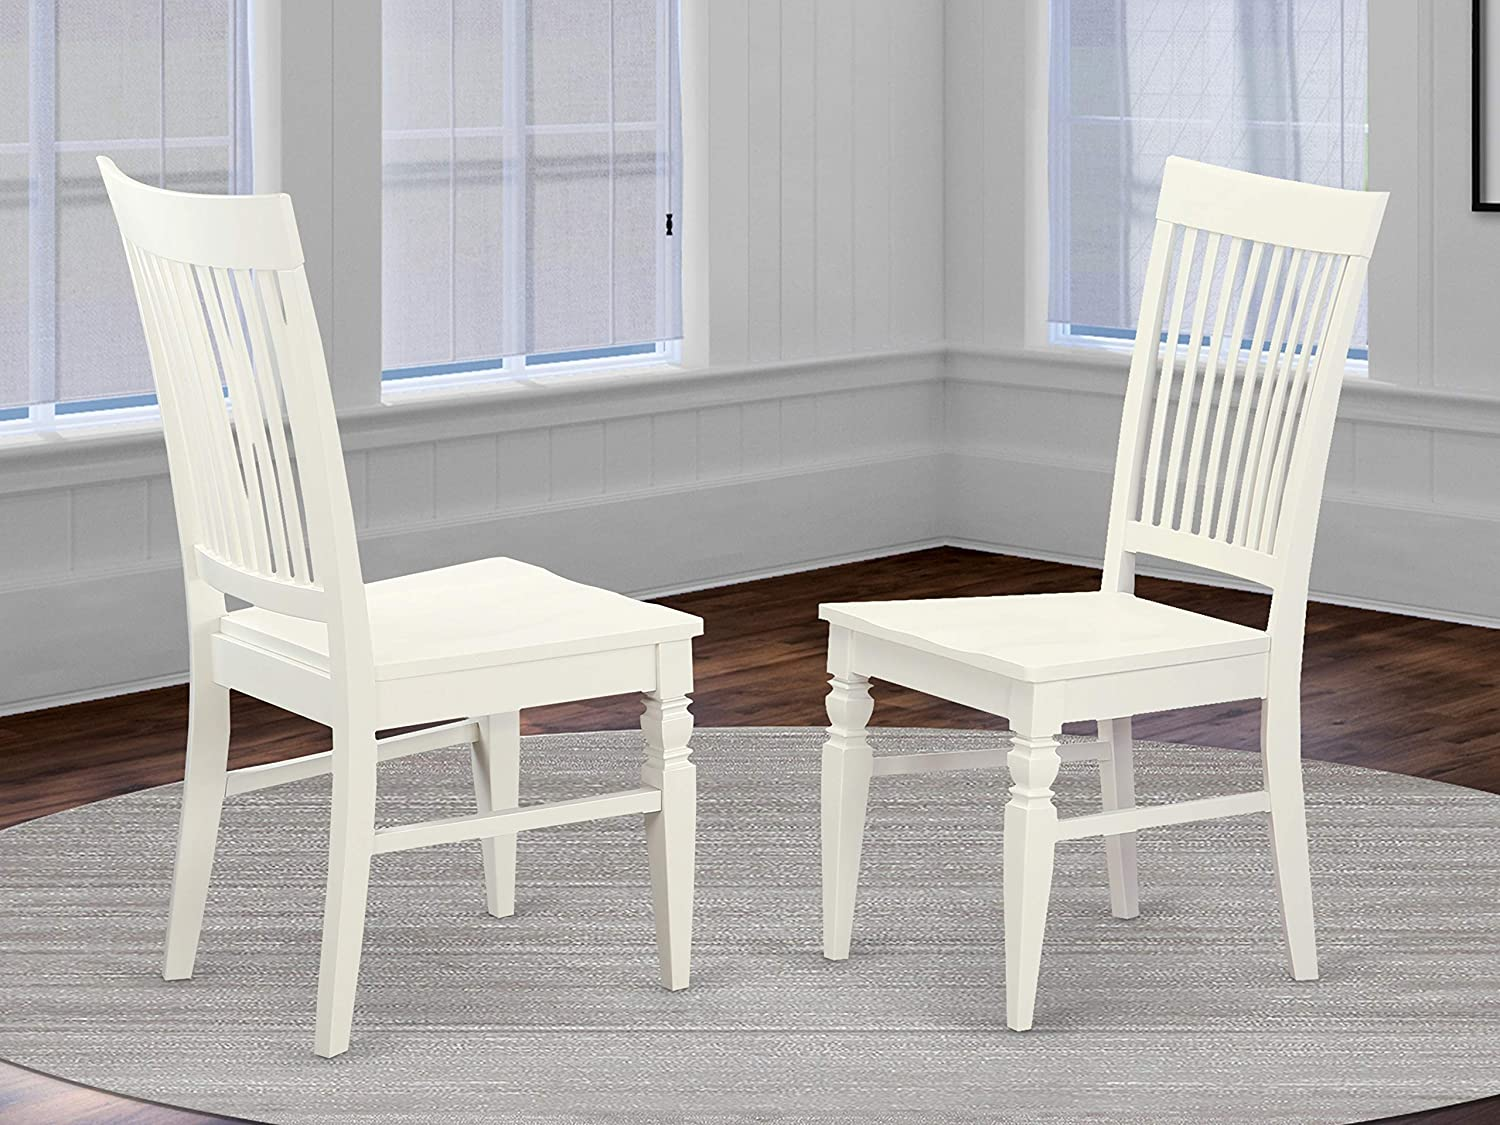 East West Furniture Weston dining chair - Wooden Seat and Linen White Solid  wood Frame dining chair set of 9